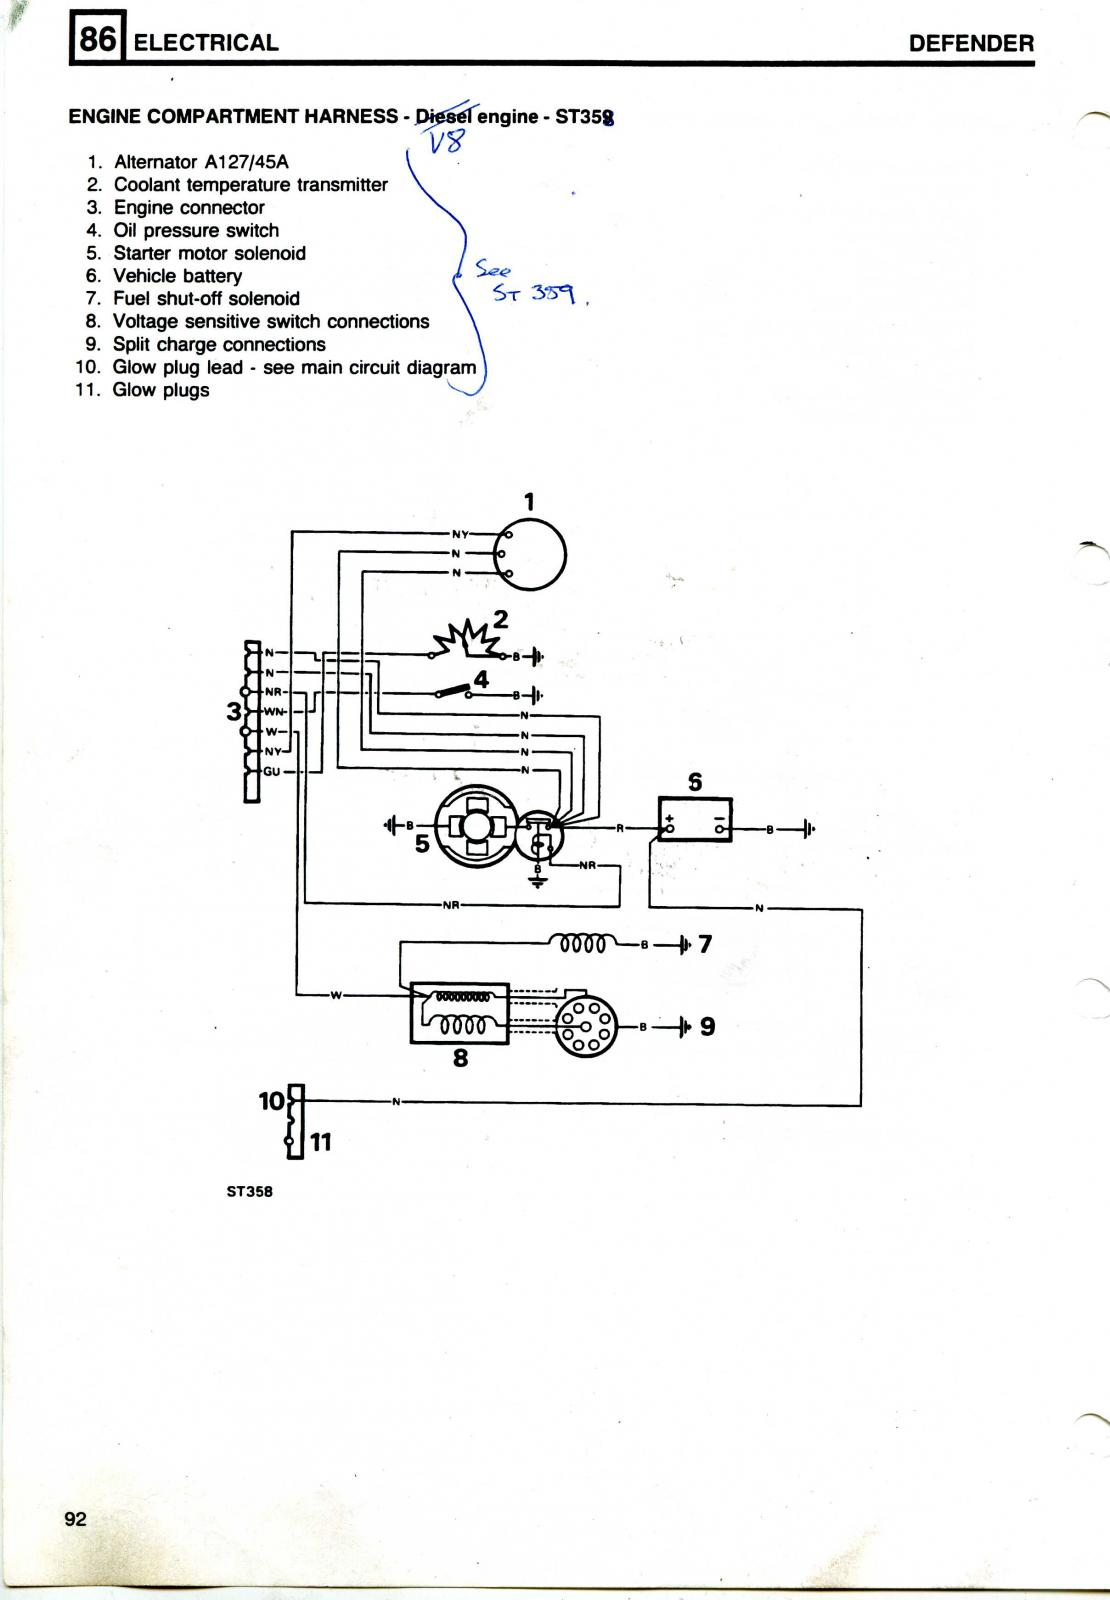 land rover 90 v8 3 5  carb  wiring diagram needed  - defender forum - lr4x4